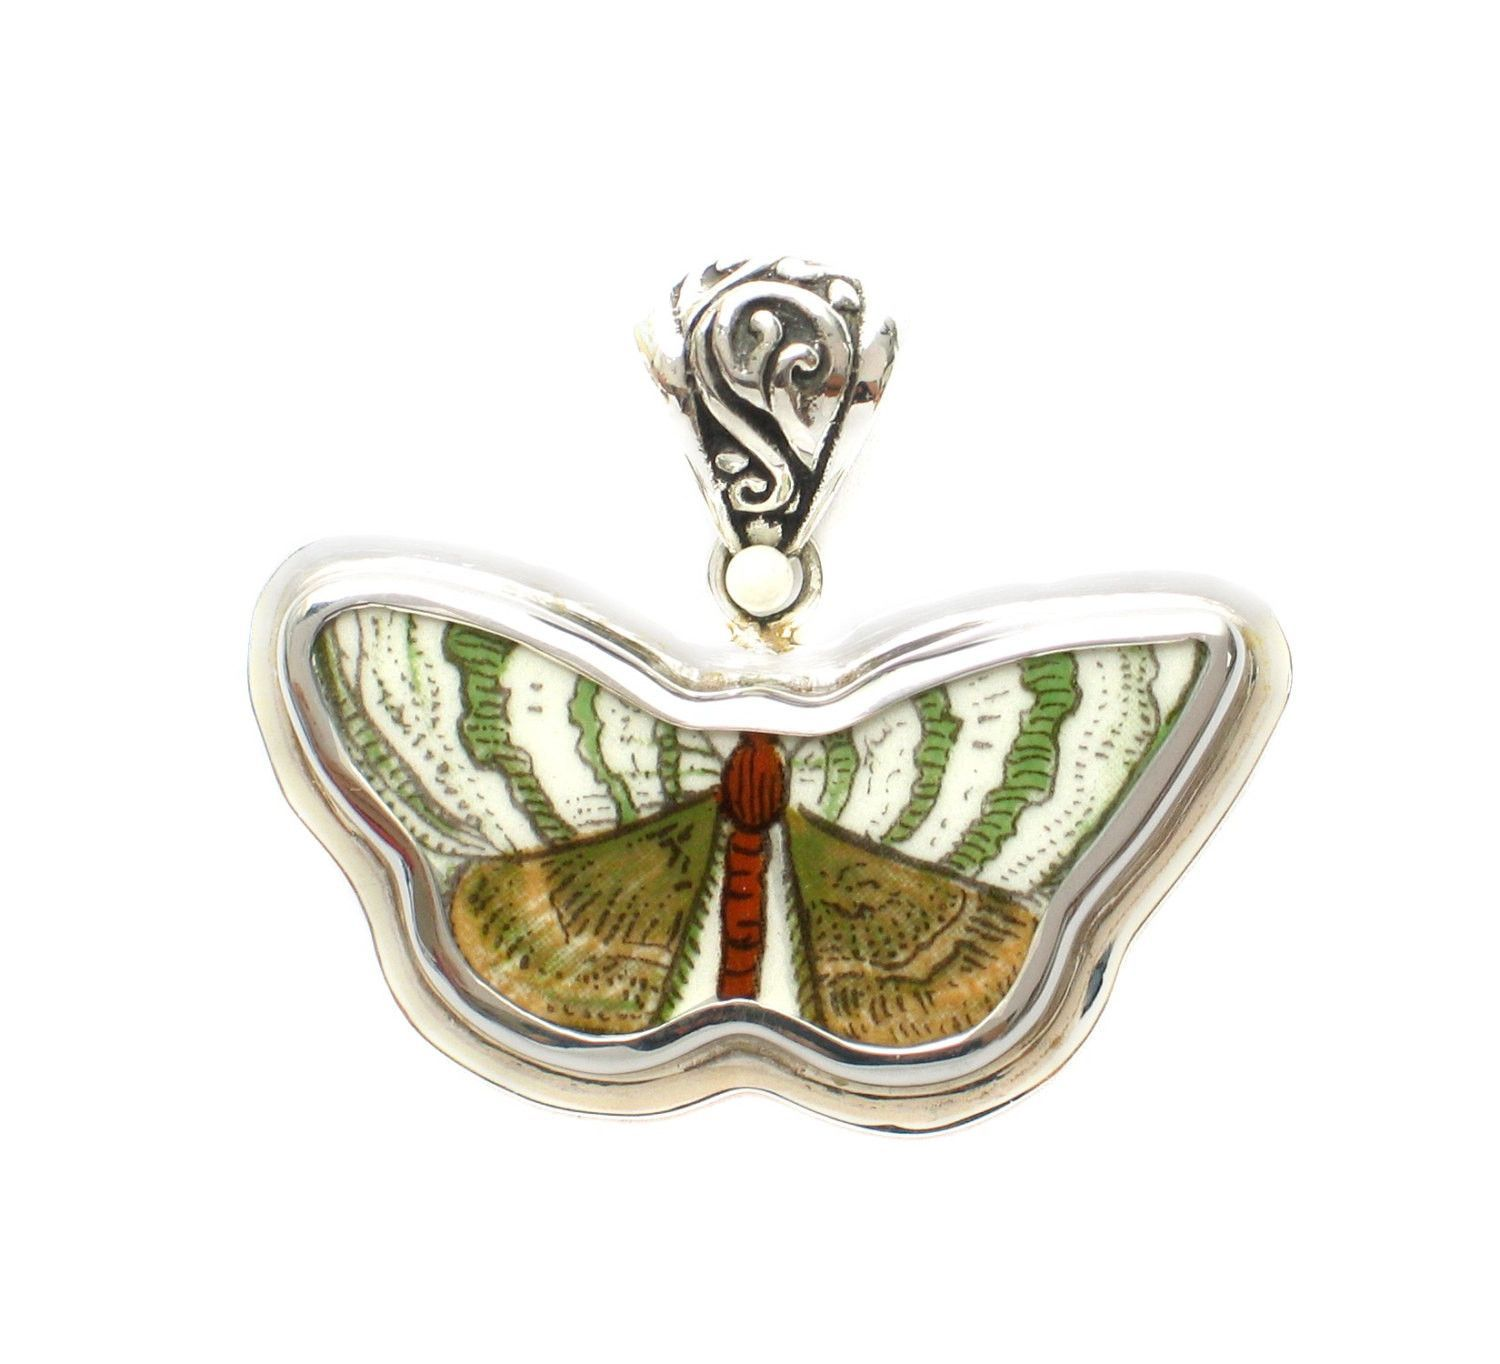 Broken China Jewelry Portmeirion Botanic Garden Green Brown White Butterfly Moth Sterling Pendant